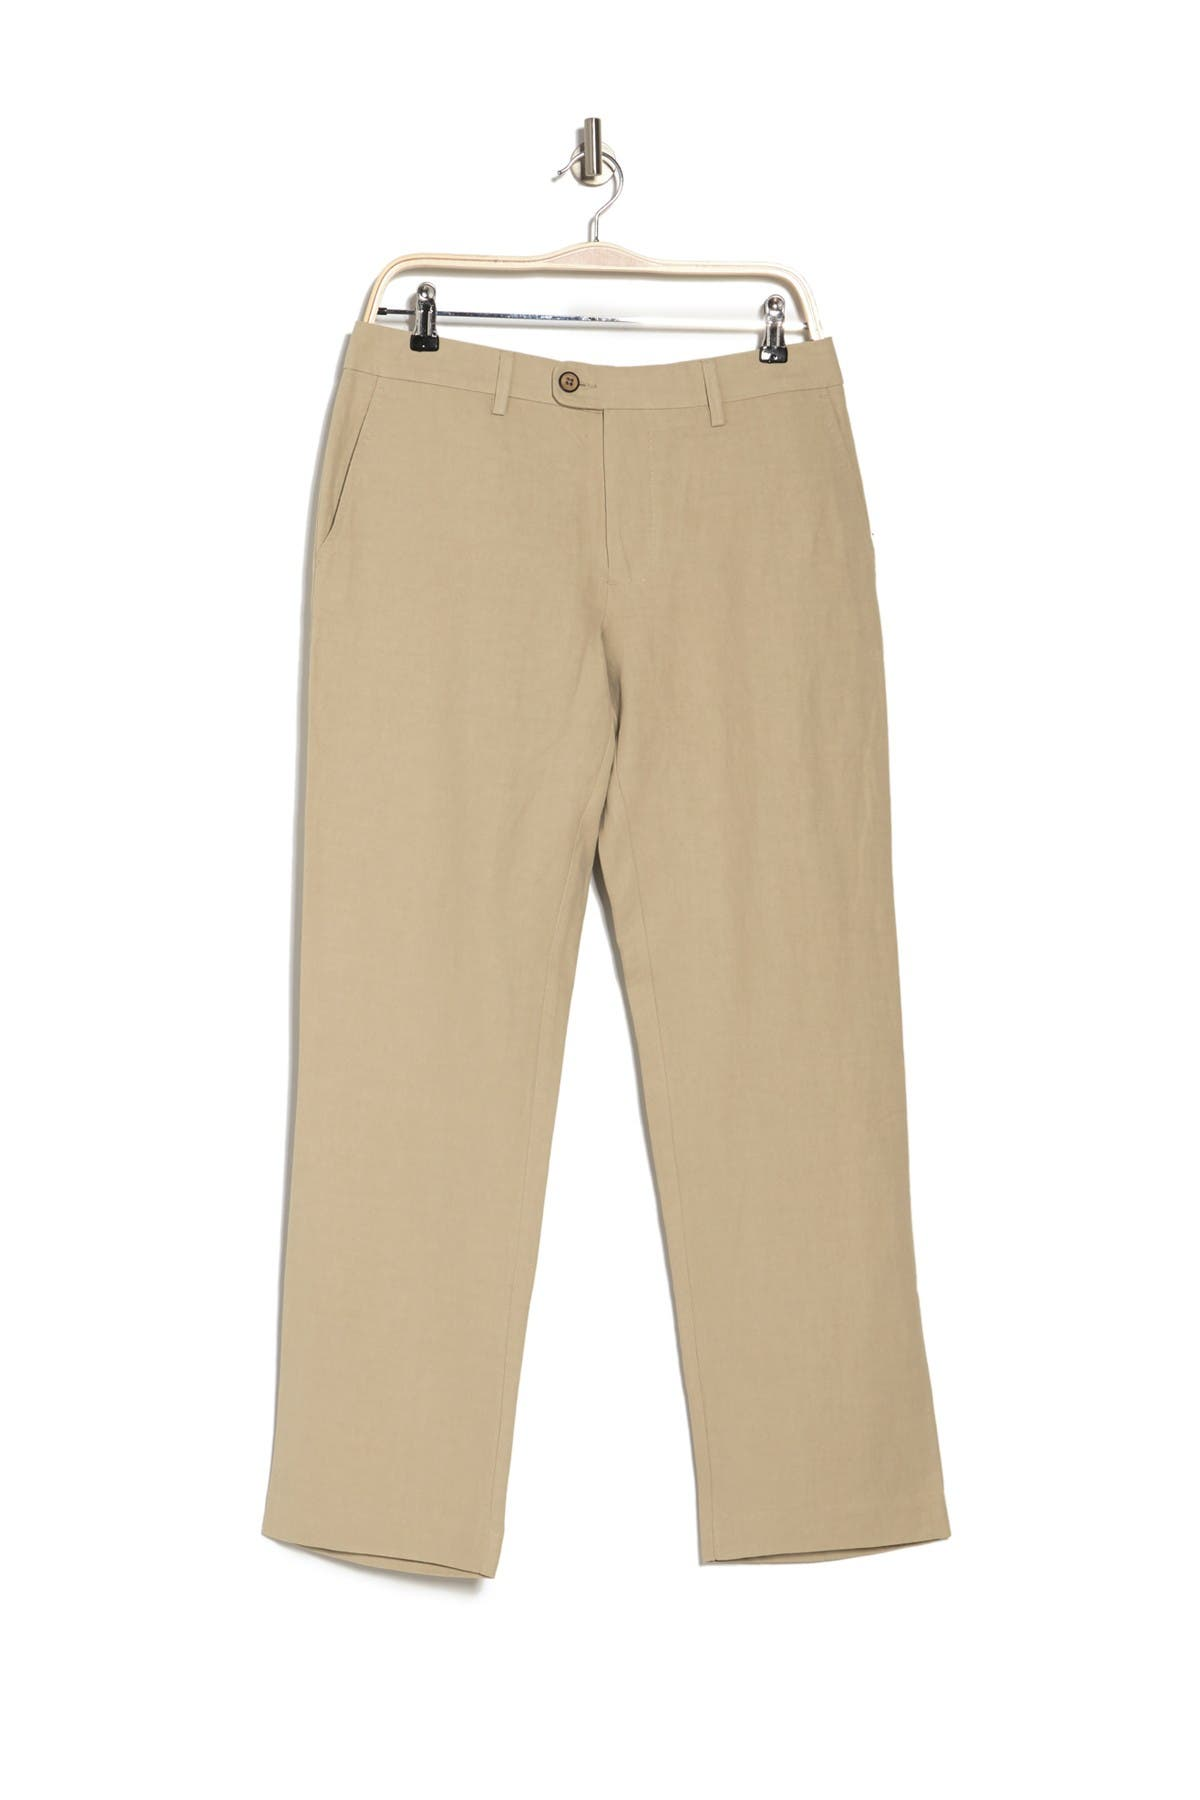 Image of Tommy Bahama Monterey Flat Front Trousers